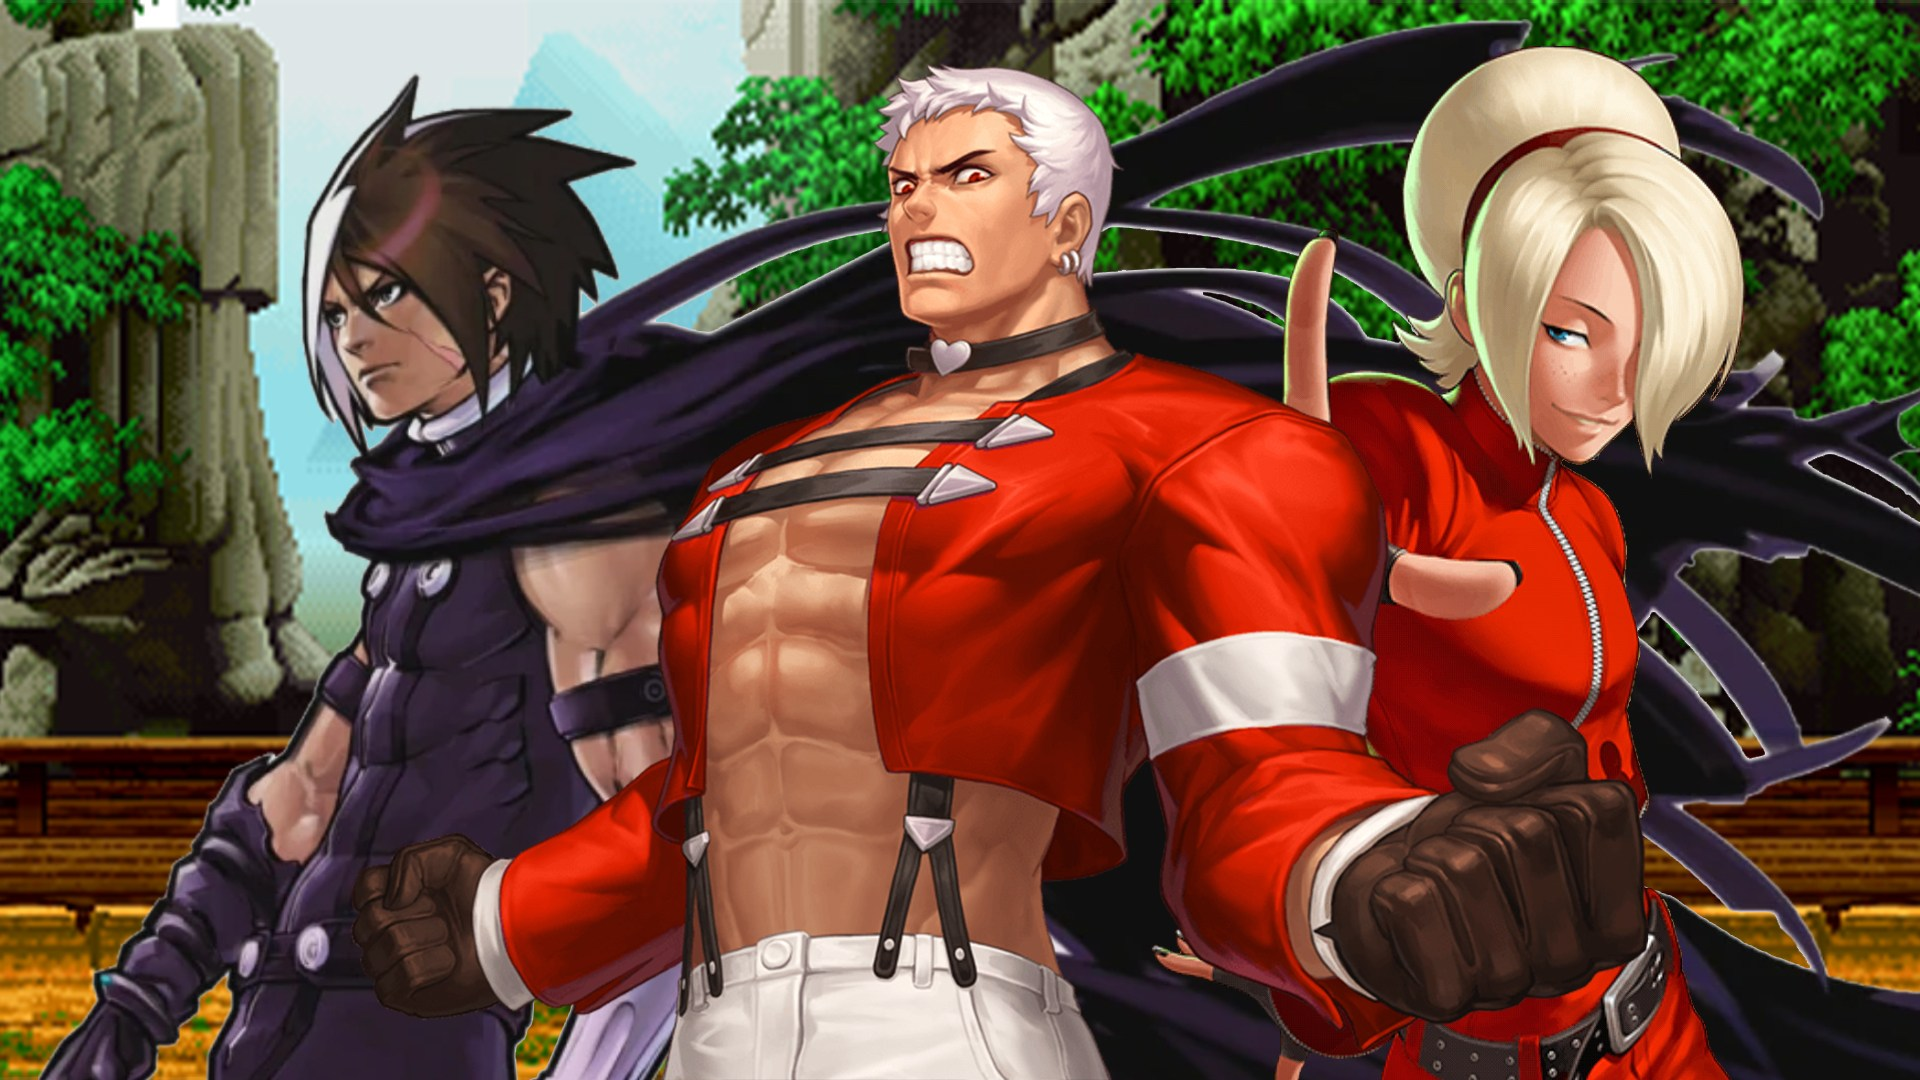 The King of Fighters XV delayed to 2022